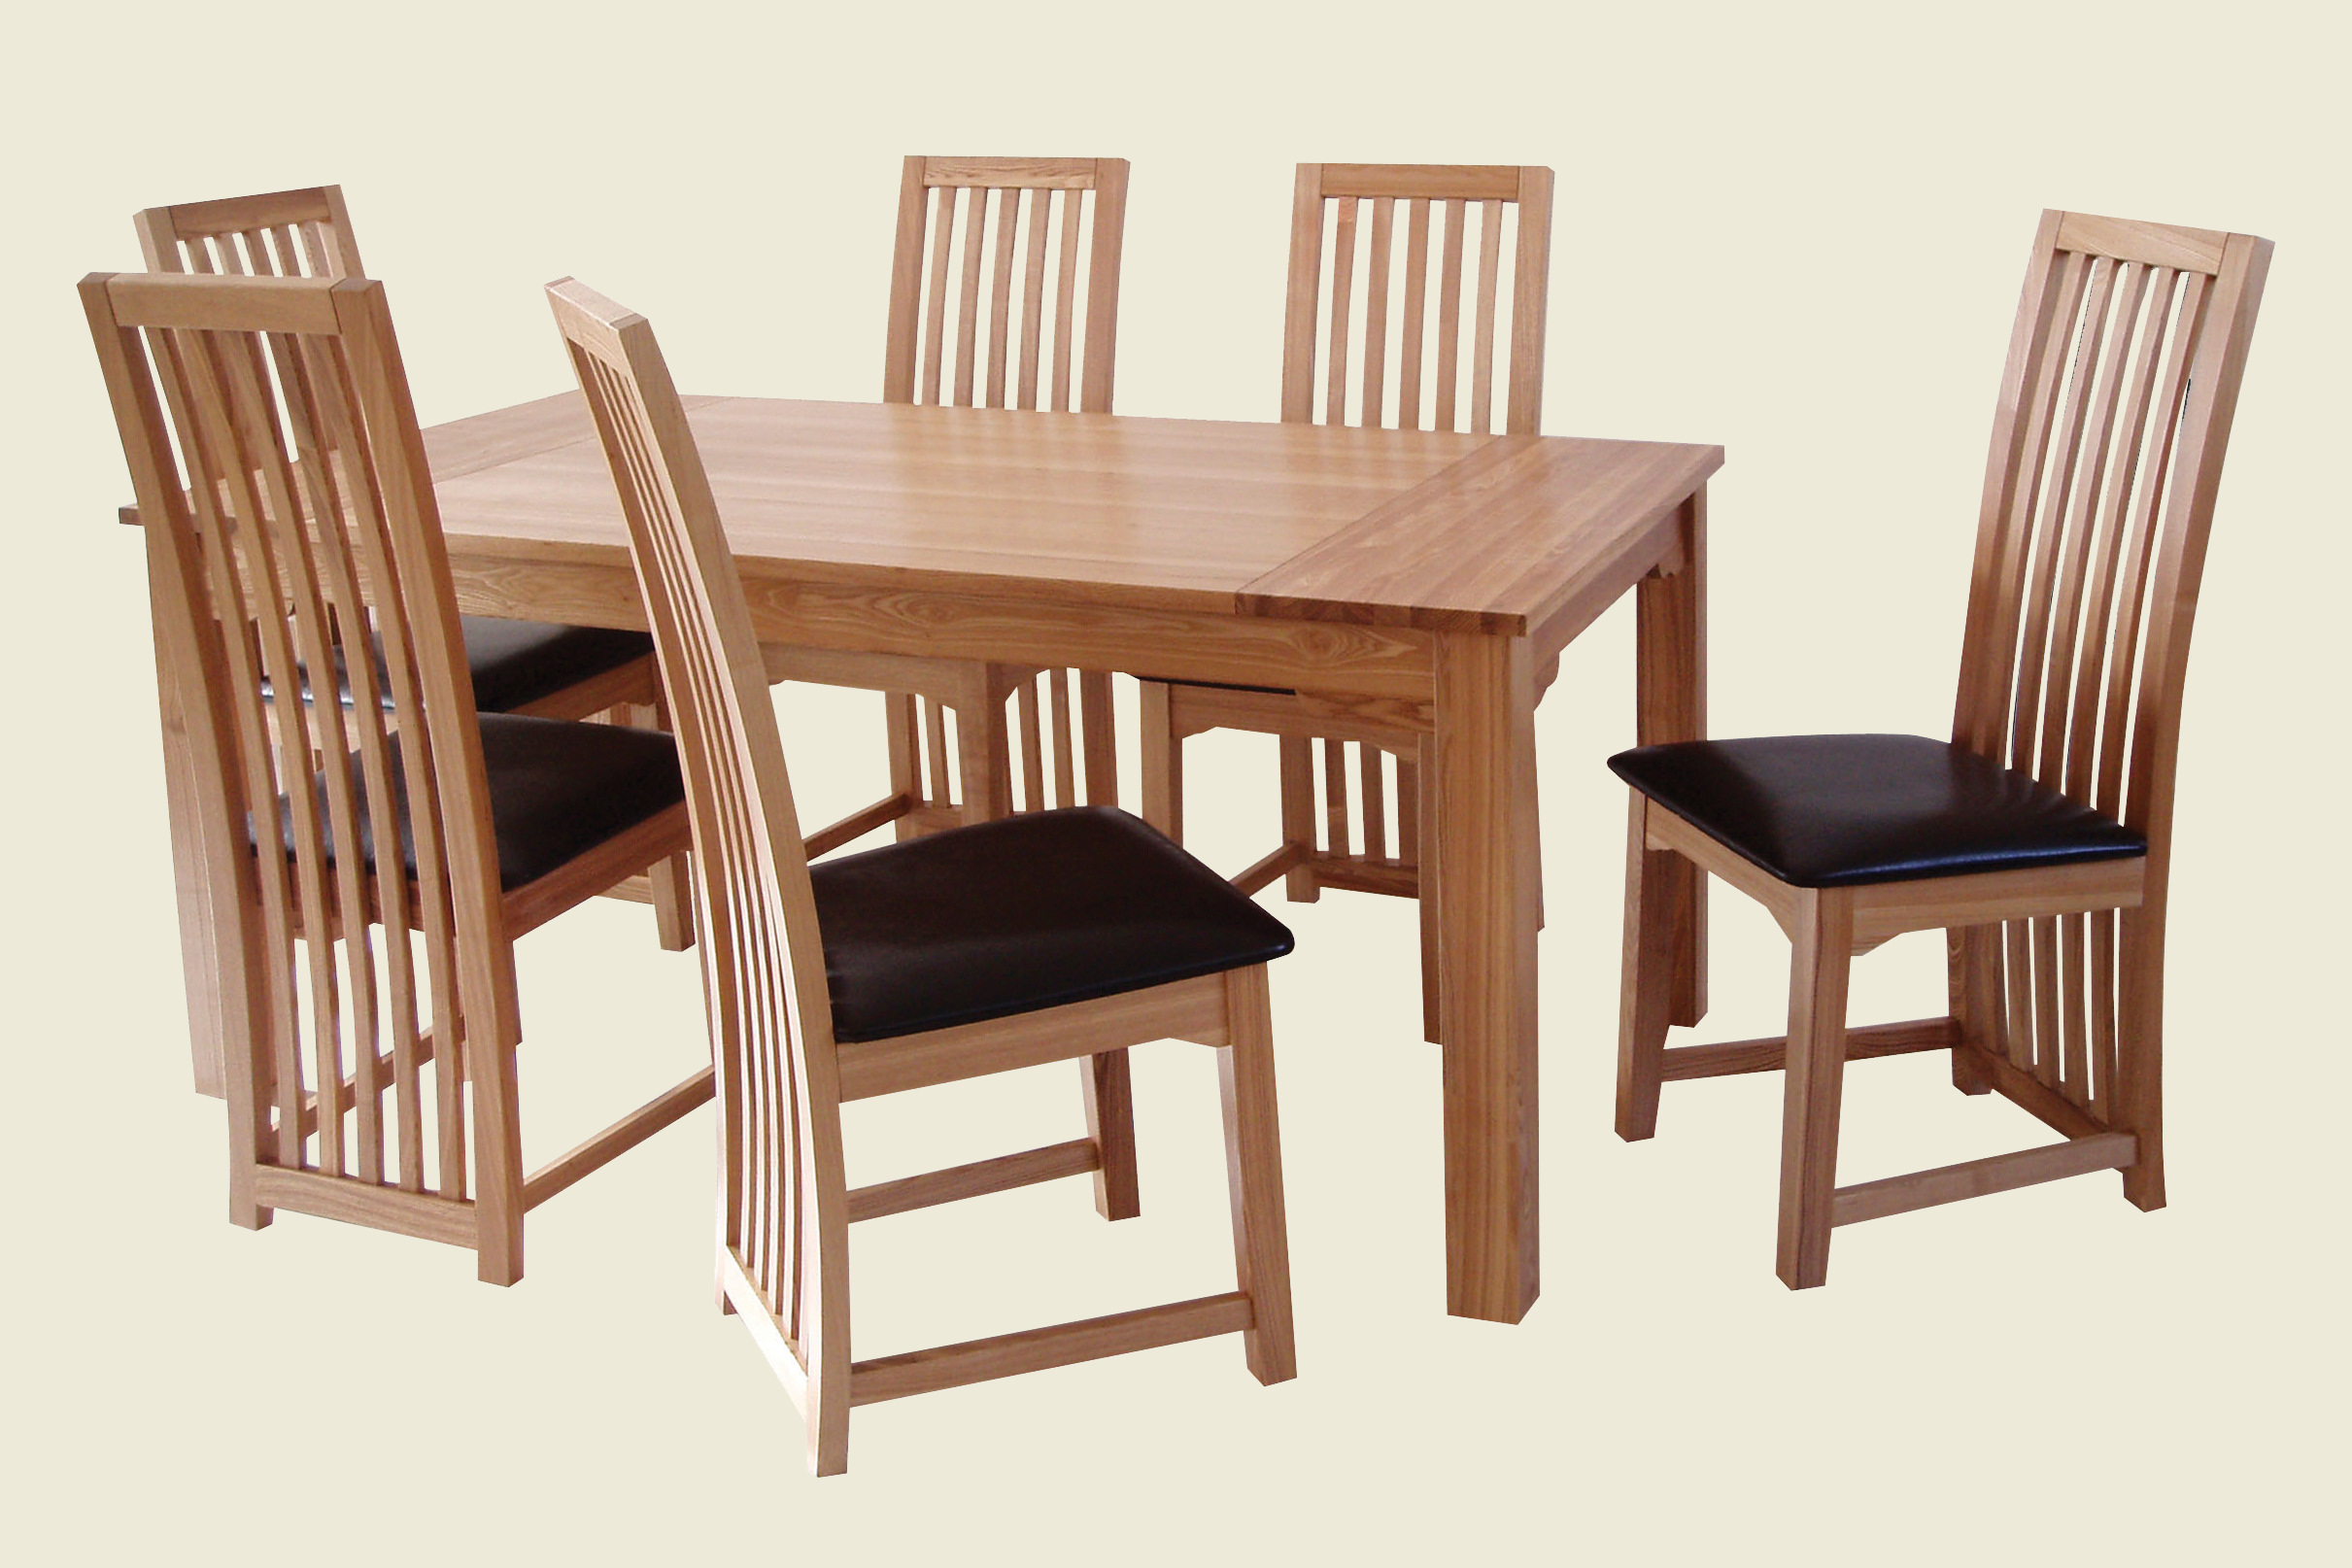 Wonderful Dining Table and Chair Sets 2421 x 1614 · 719 kB · jpeg